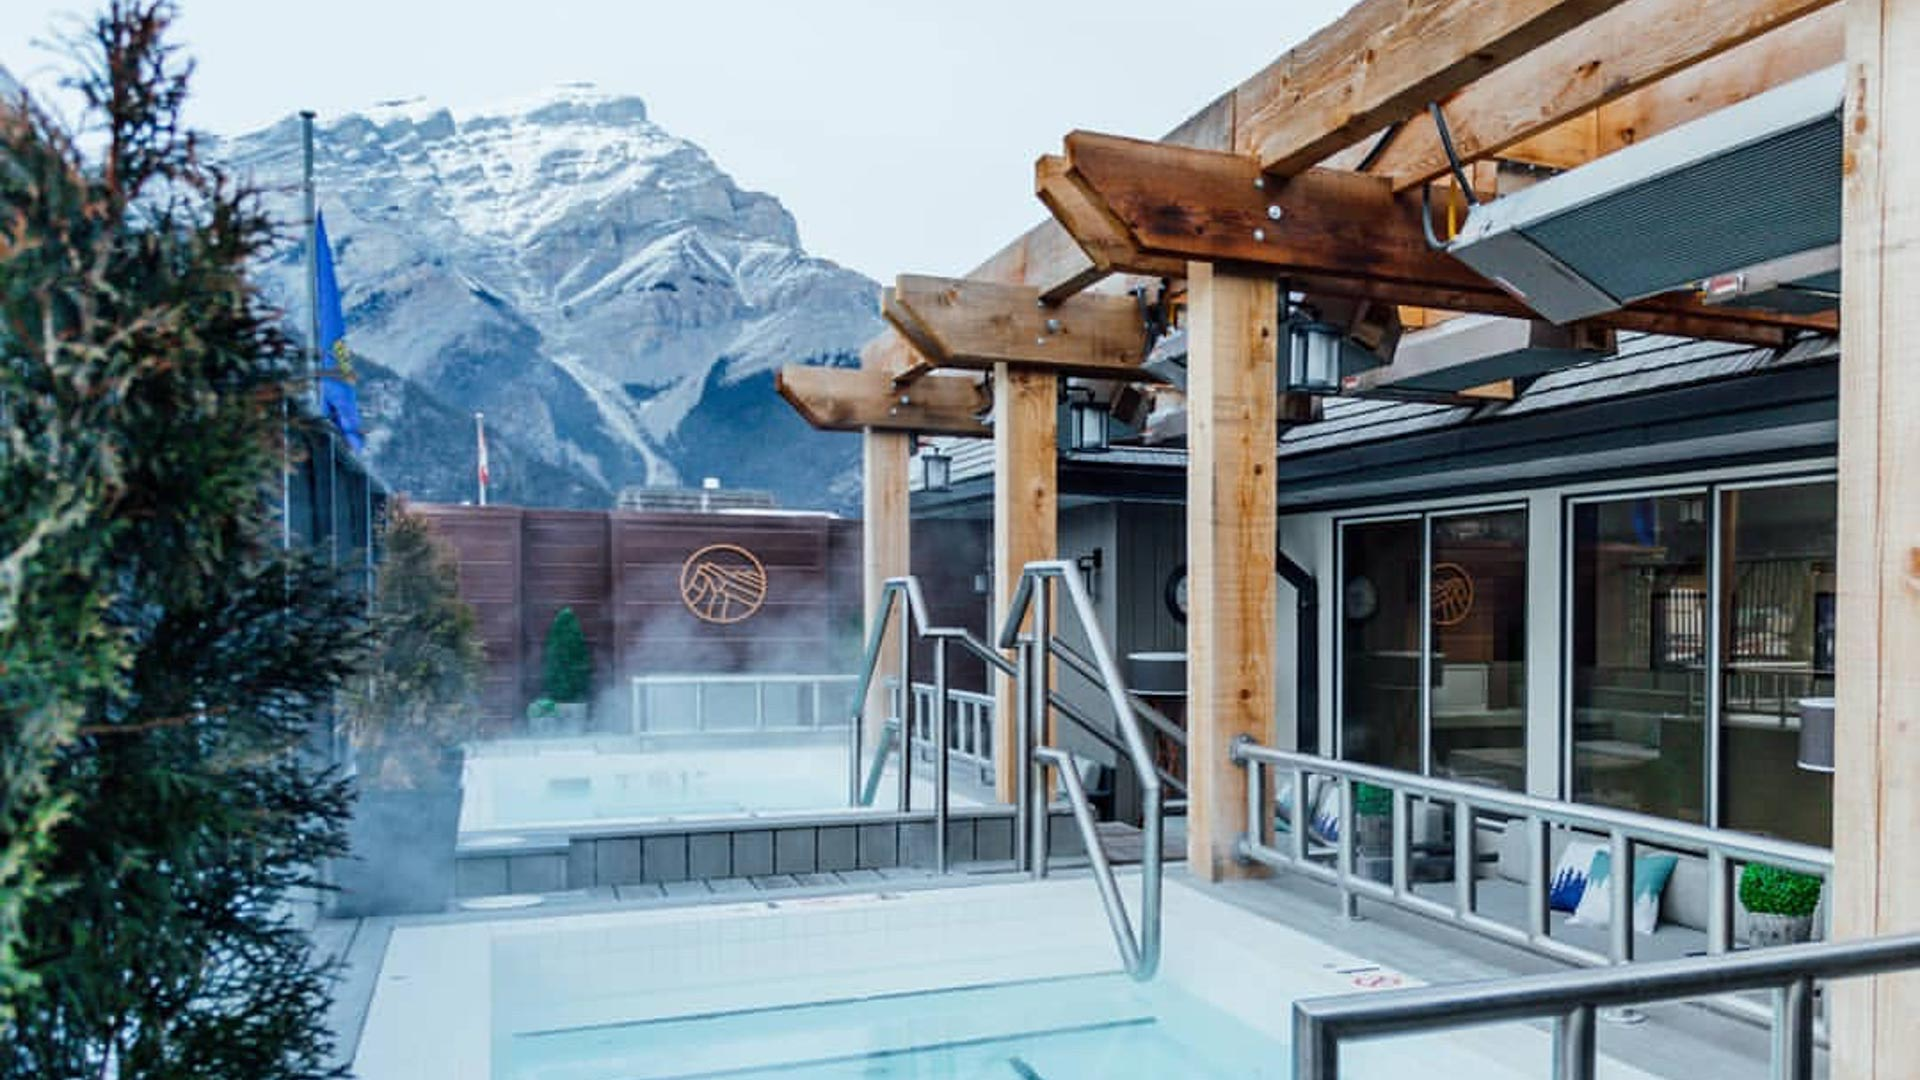 Roof top hot pool at Mount Royal Hotel, Banff National Park. Photo courtesy of Pursuit.